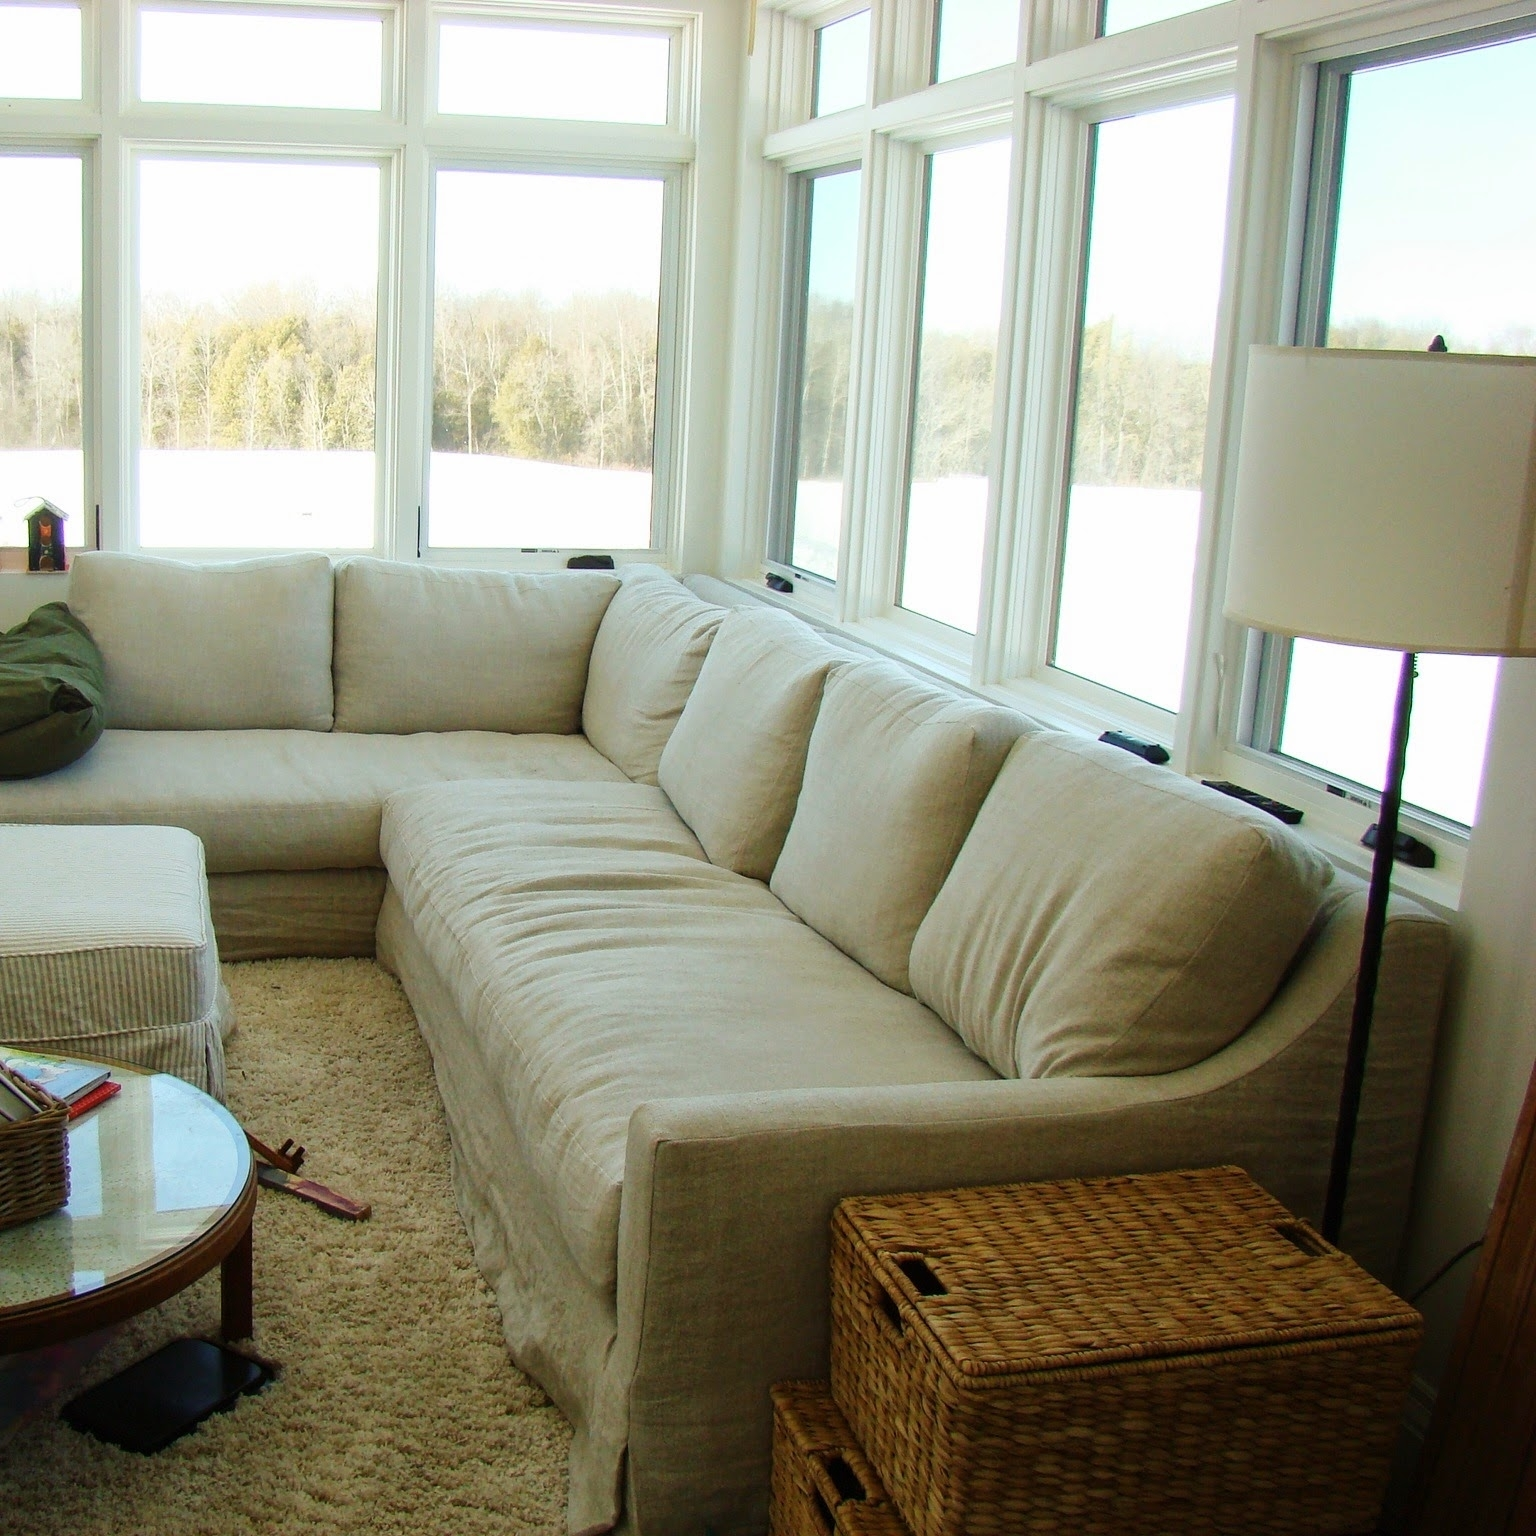 Recent Restoration Hardware Sectional Sofas Within Building Walnut Farm Belgian Linen Slipcovered Furniture Gallery